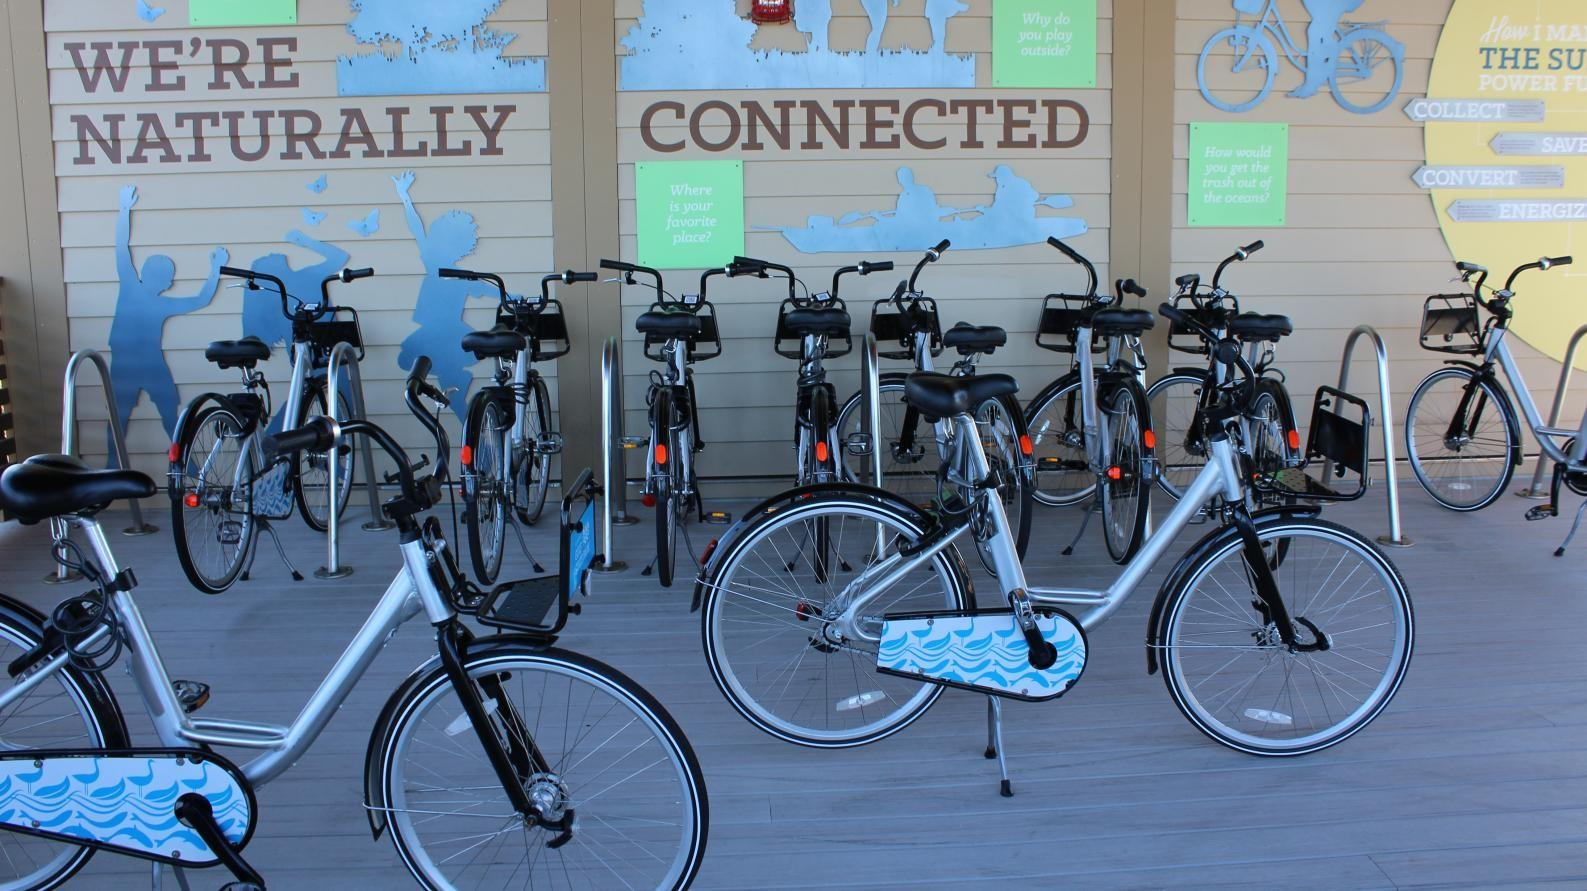 Bike Share Program Featured Throughout the Park